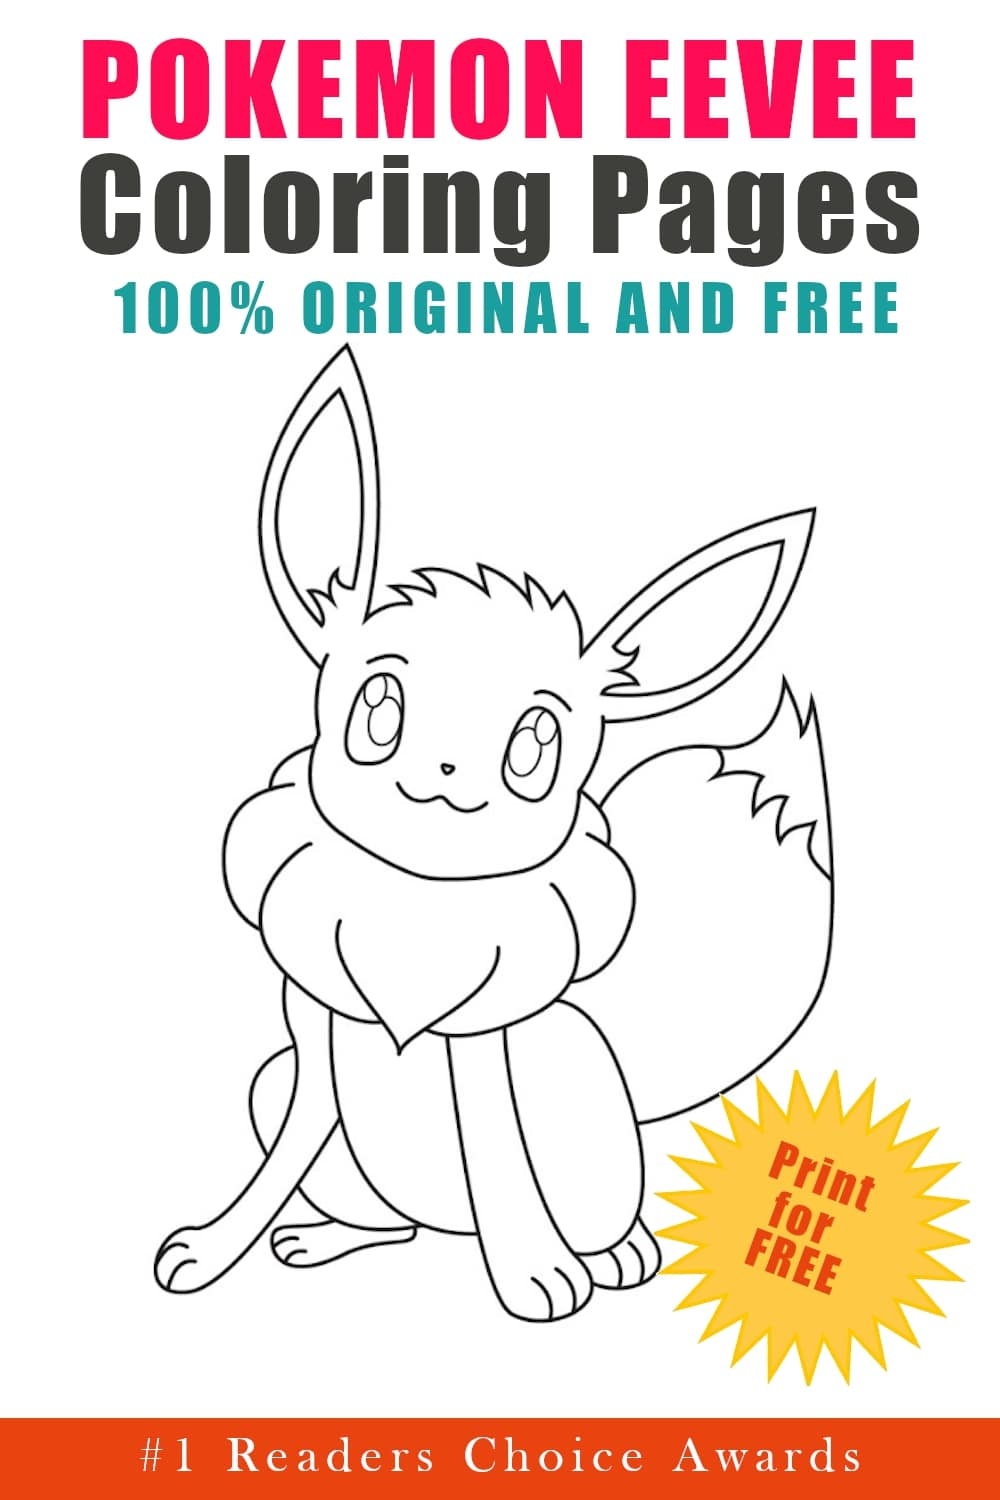 original and free pokemon eevee coloring pages